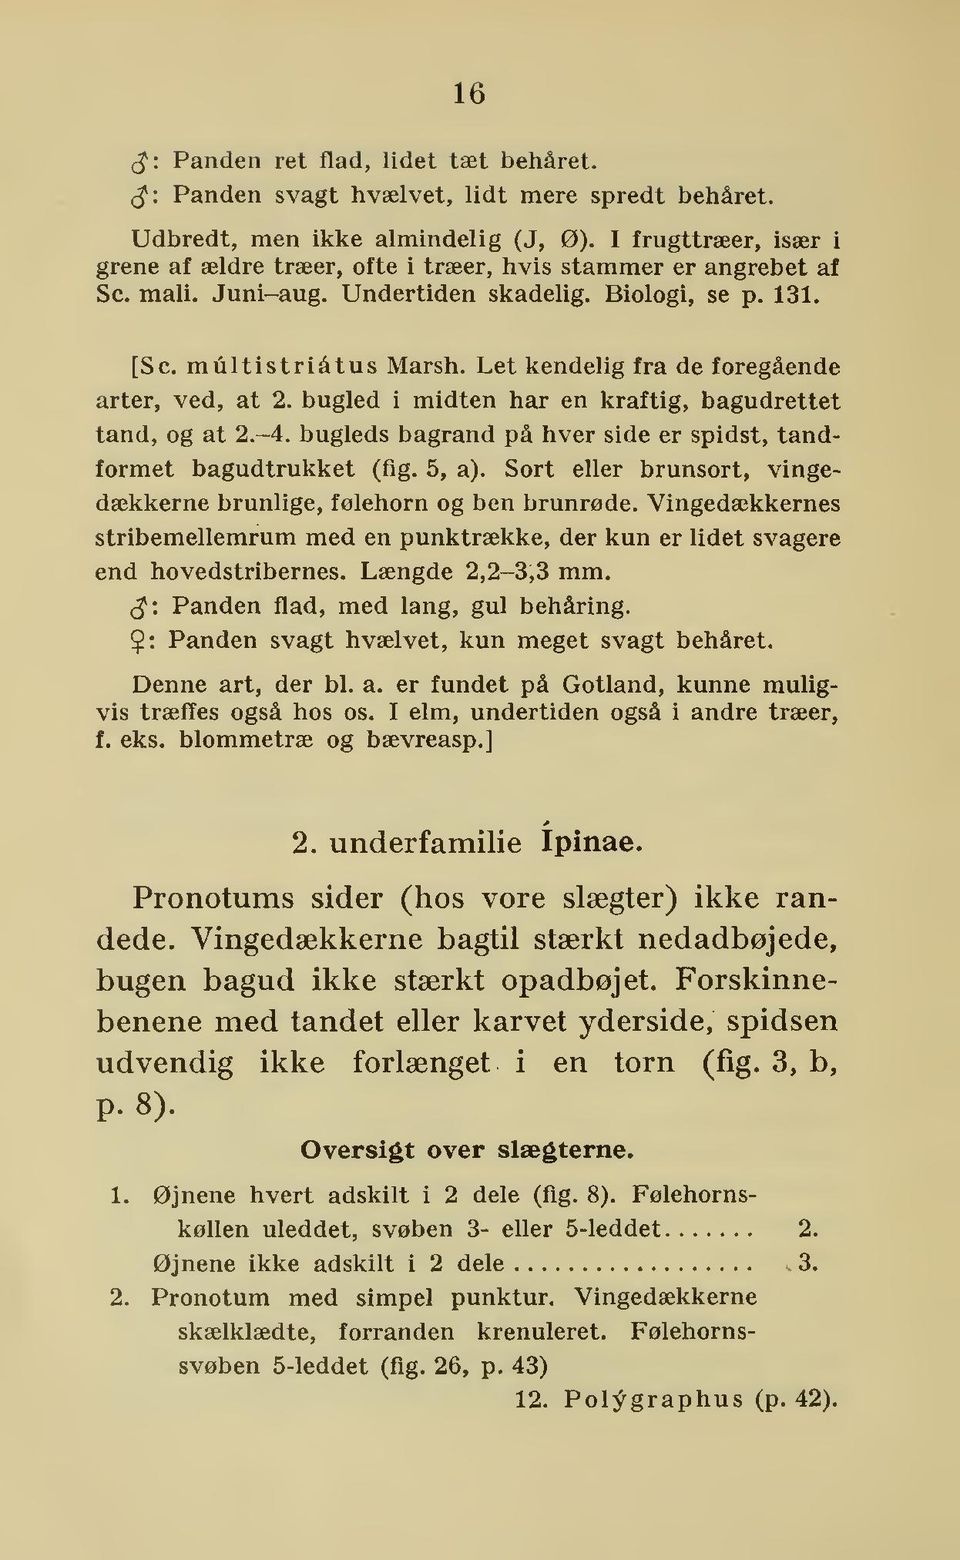 Let kendelig fra de foregående arter, ved, at 2. bugled i midten har en kraftig, bagudrettet tand, og at 2.-4. bugleds bagrand på hver side er spidst, tandformet bagudtrukket (fig. 5, a).